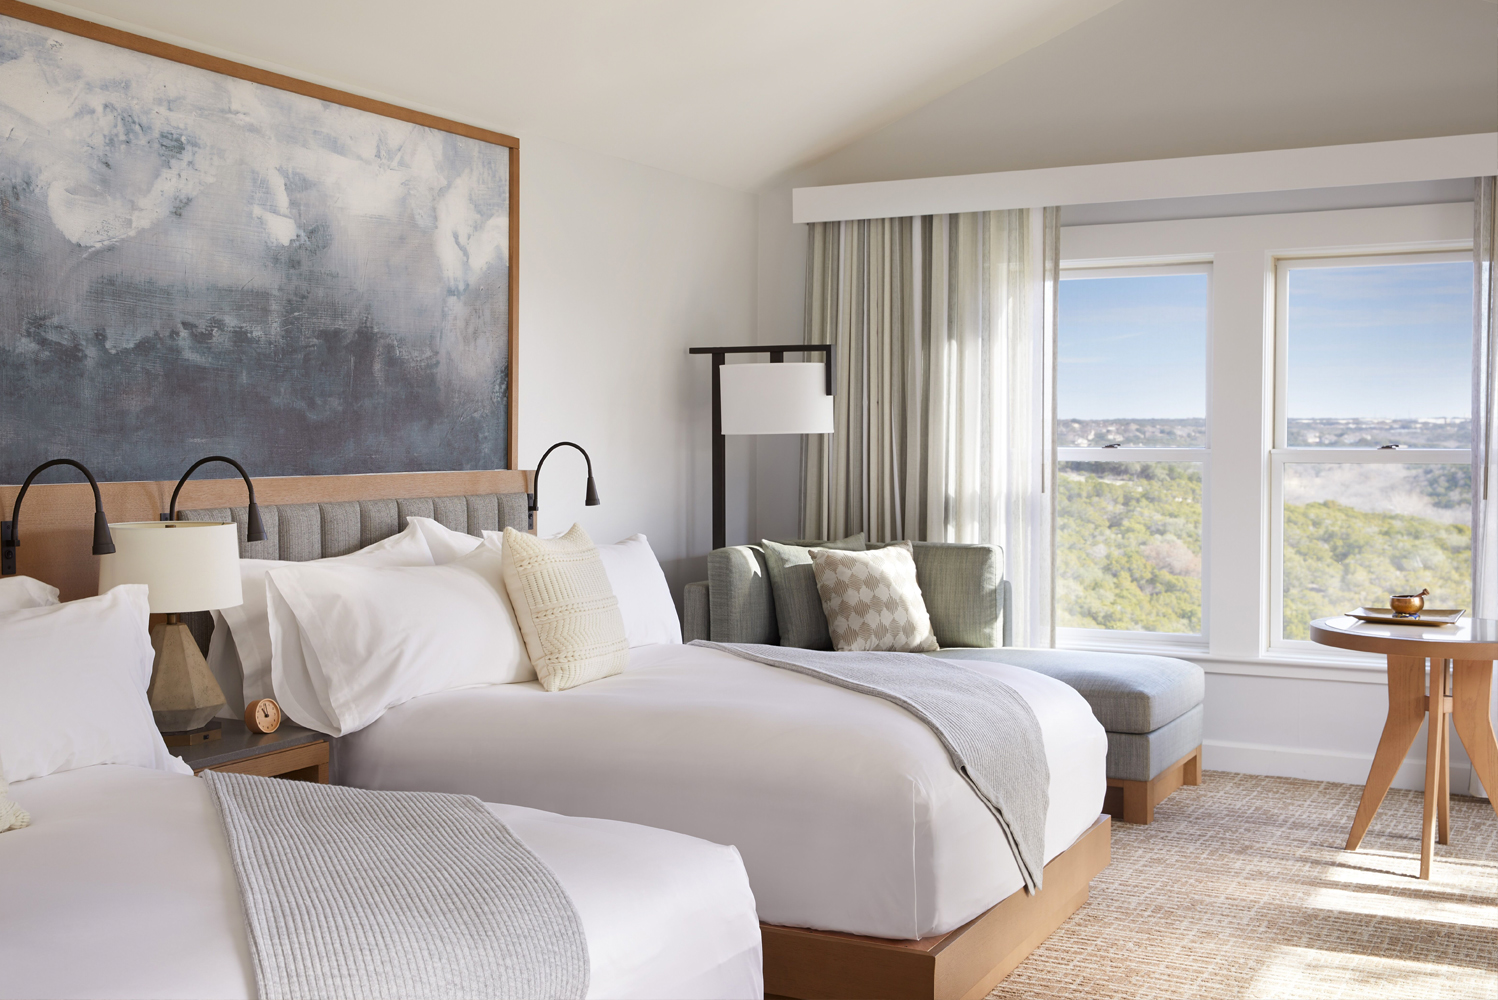 Miraval Austin's 117 guestrooms and suites were designed by Hart Howerton.